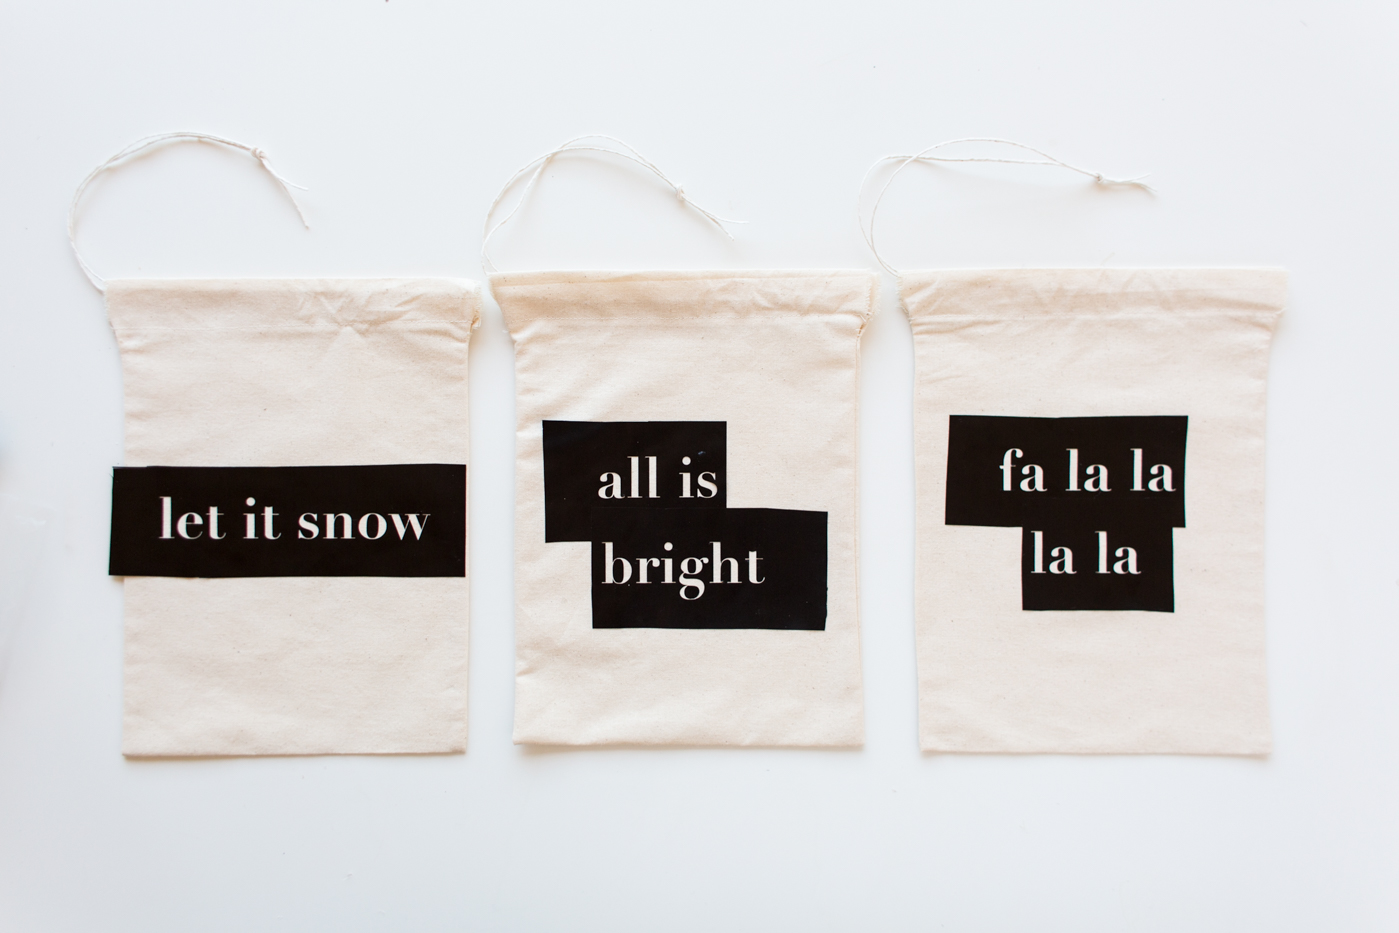 diy-christmas-quote-stencilled-gift-bags-tutorial-with-dulux-fallfordiy-9